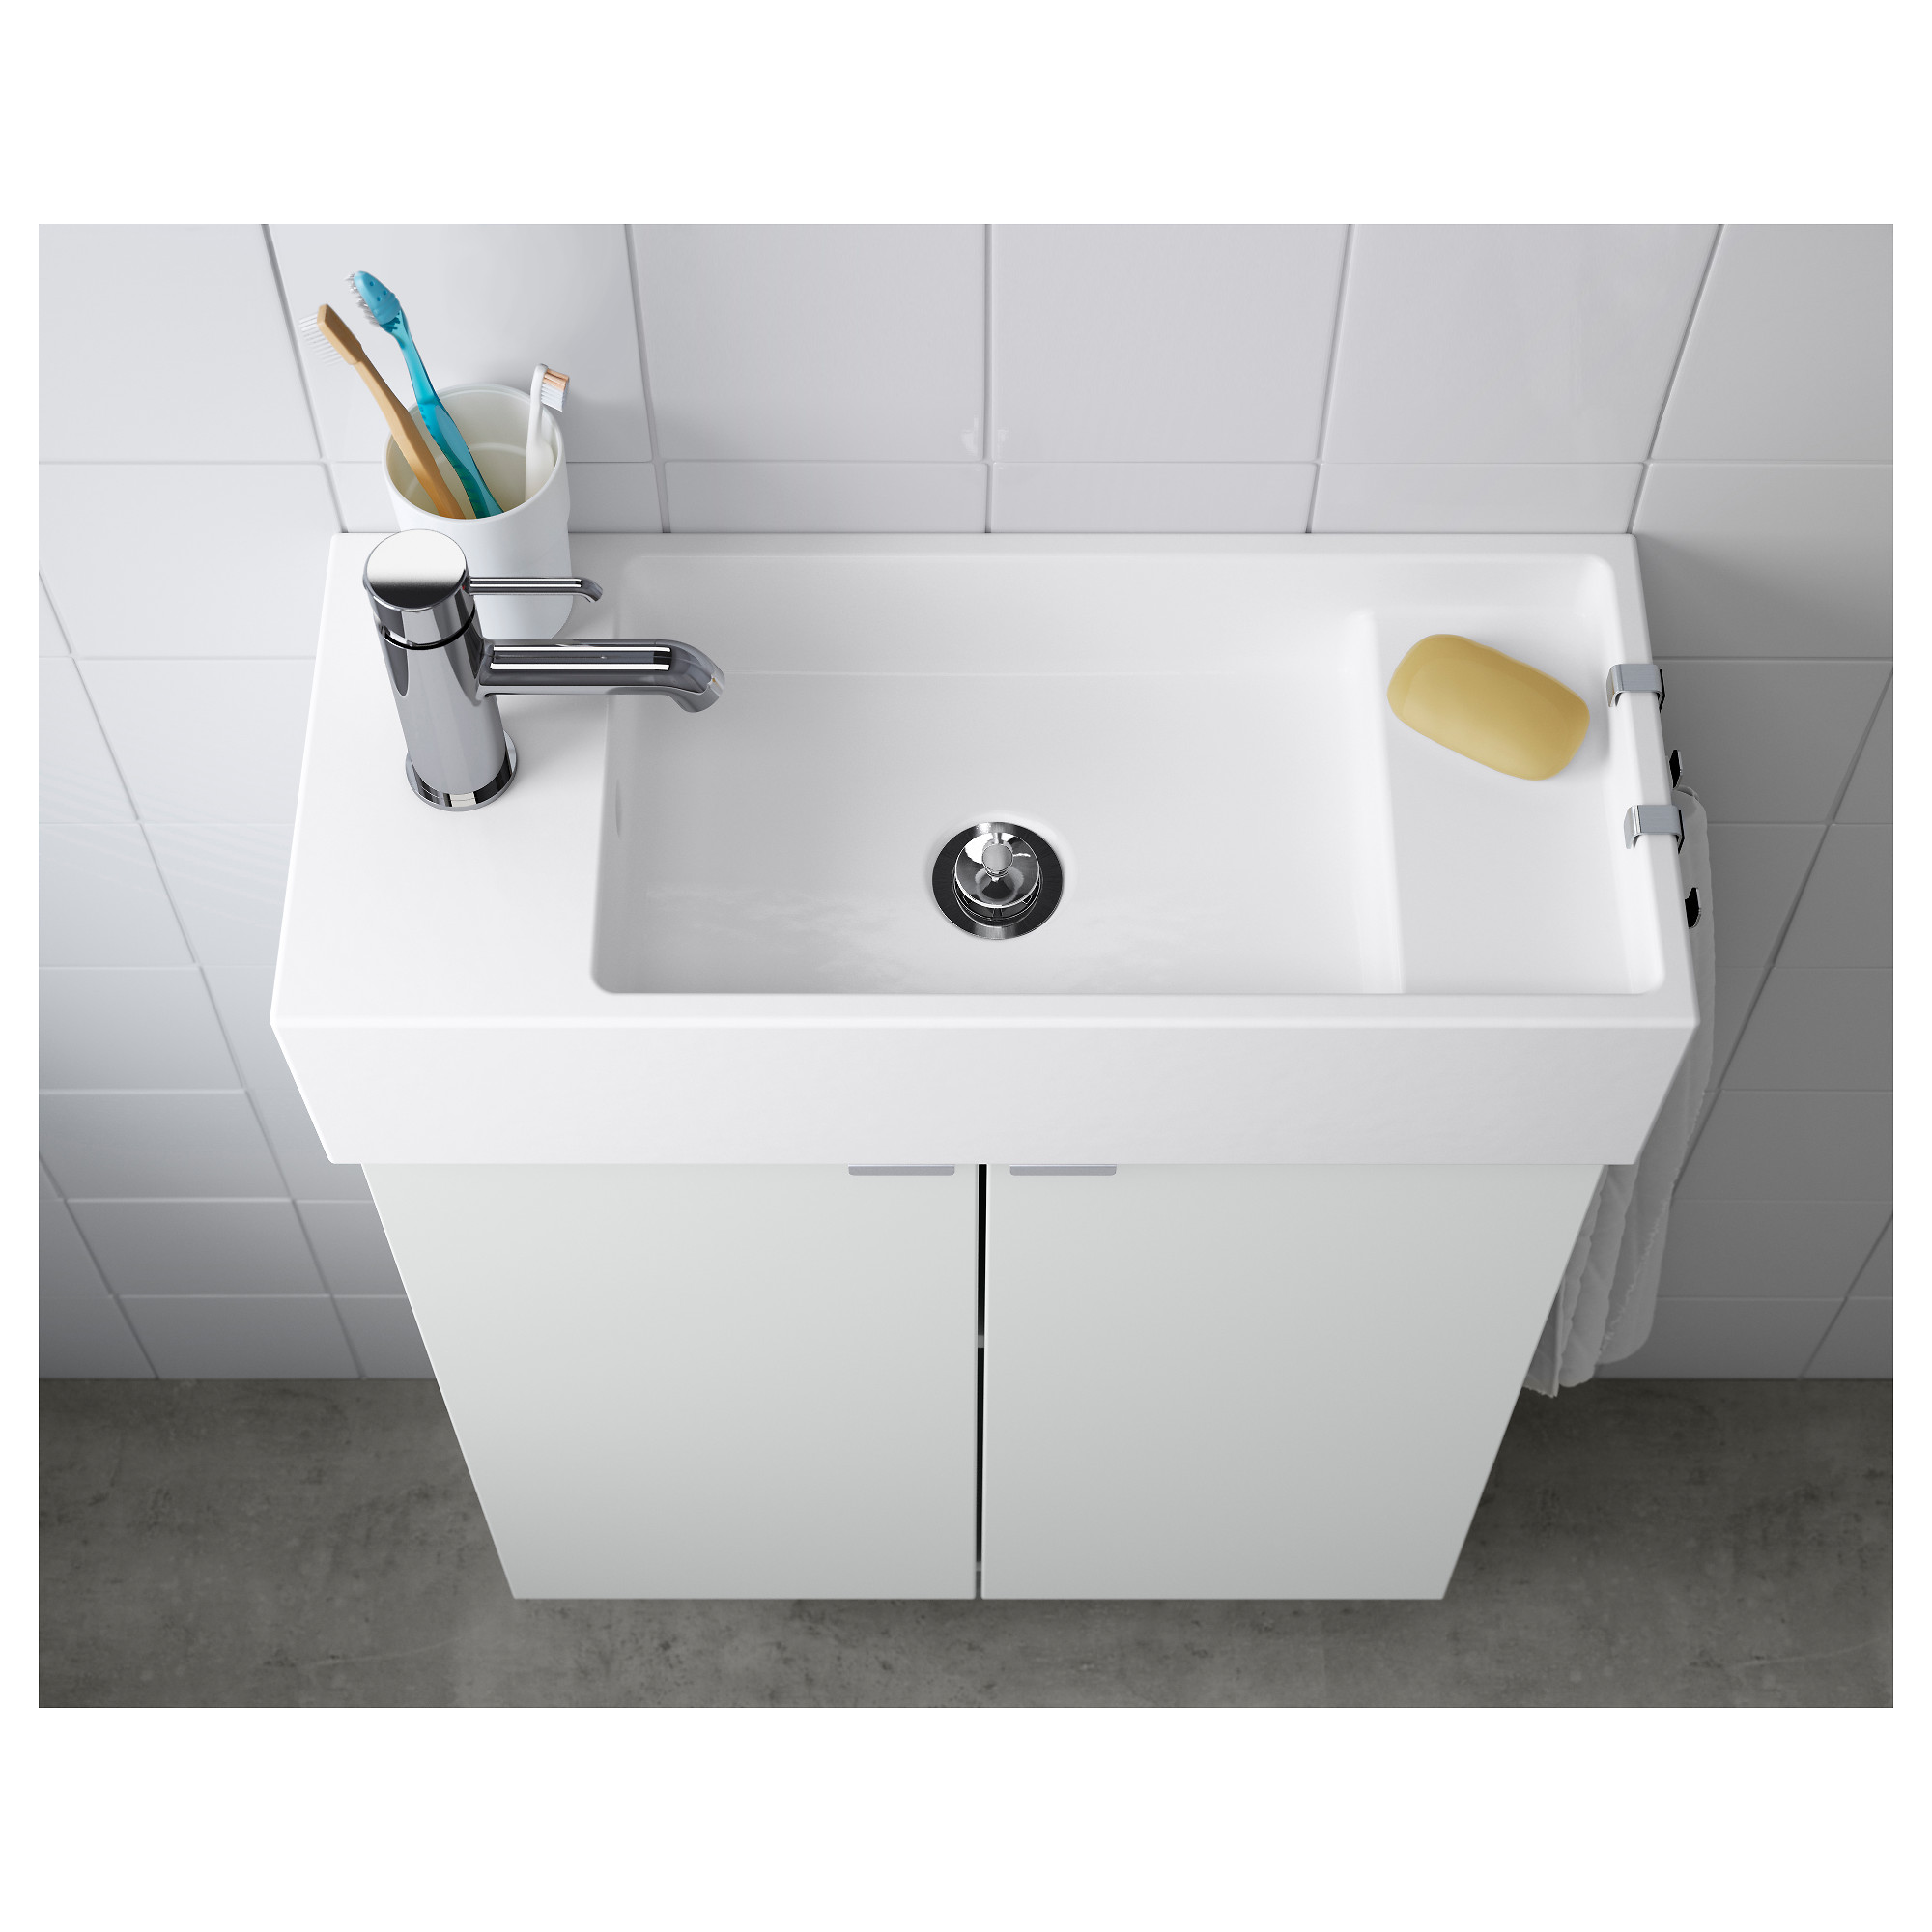 Bathroom sinks with options for everyone - Bathroom Sinks With Options For Everyone 7